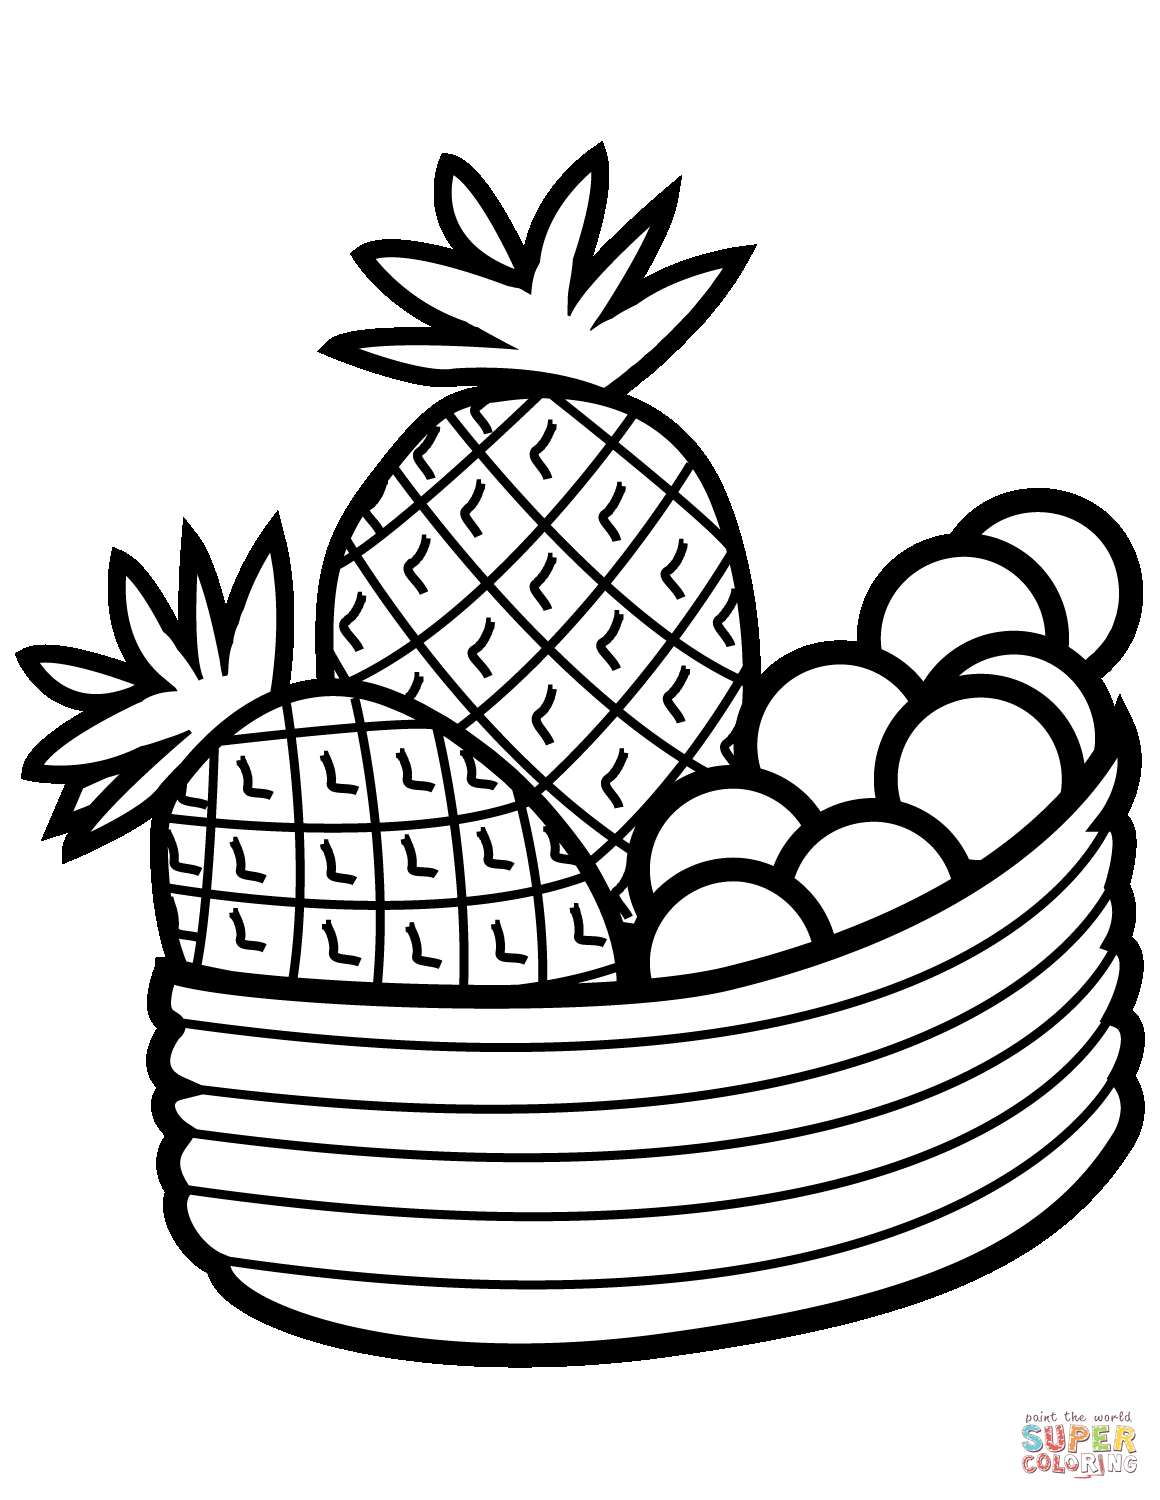 bowl of fruit coloring page bowl of fruit coloring pages coloring pages to download of fruit bowl page coloring